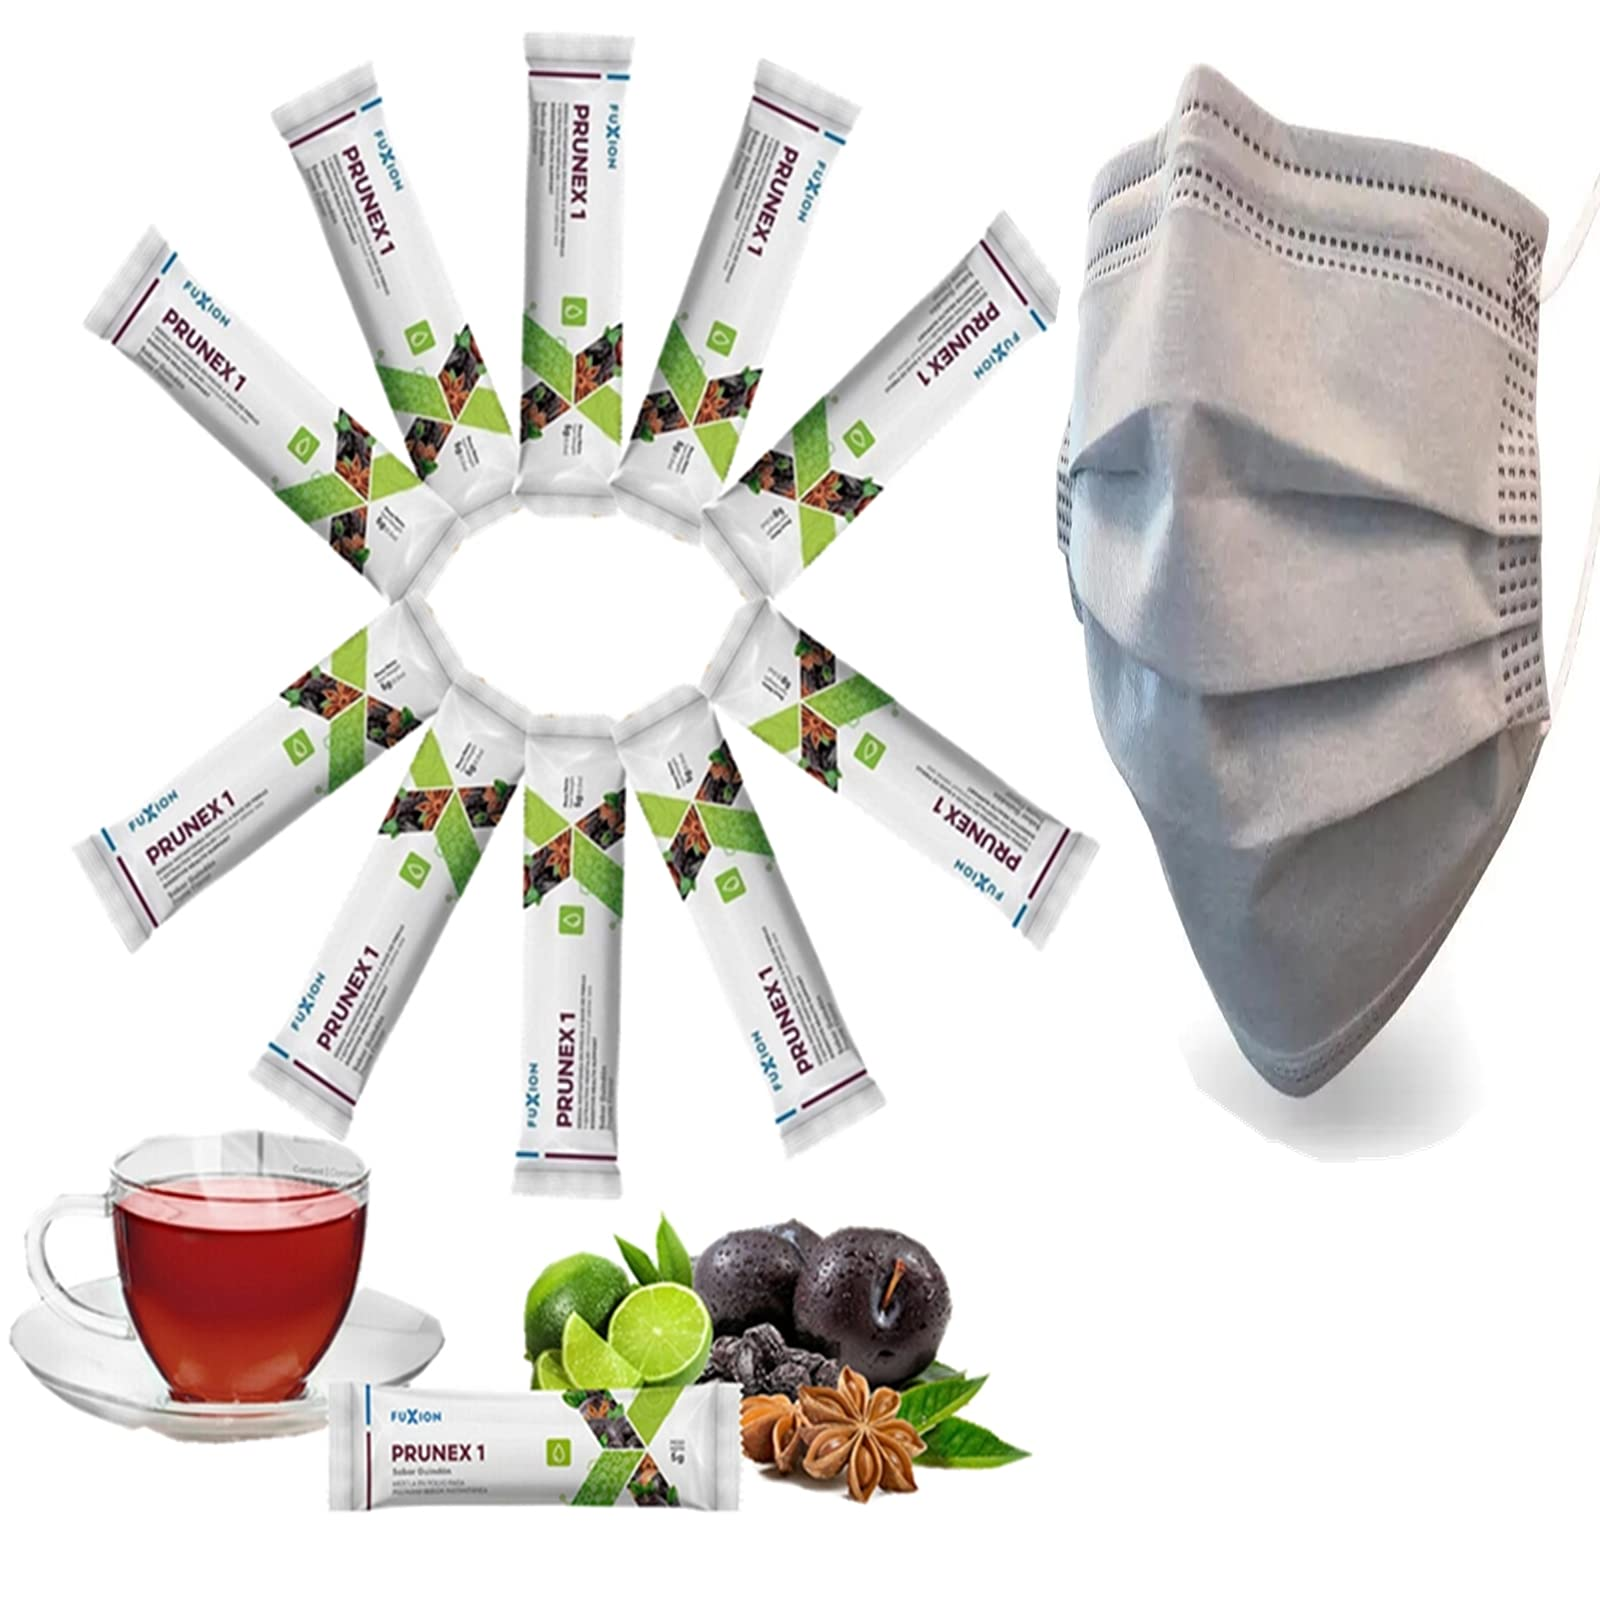 All Natural Ingredients Detox Cleanse Instant Tea Mix Prune & Plum w.